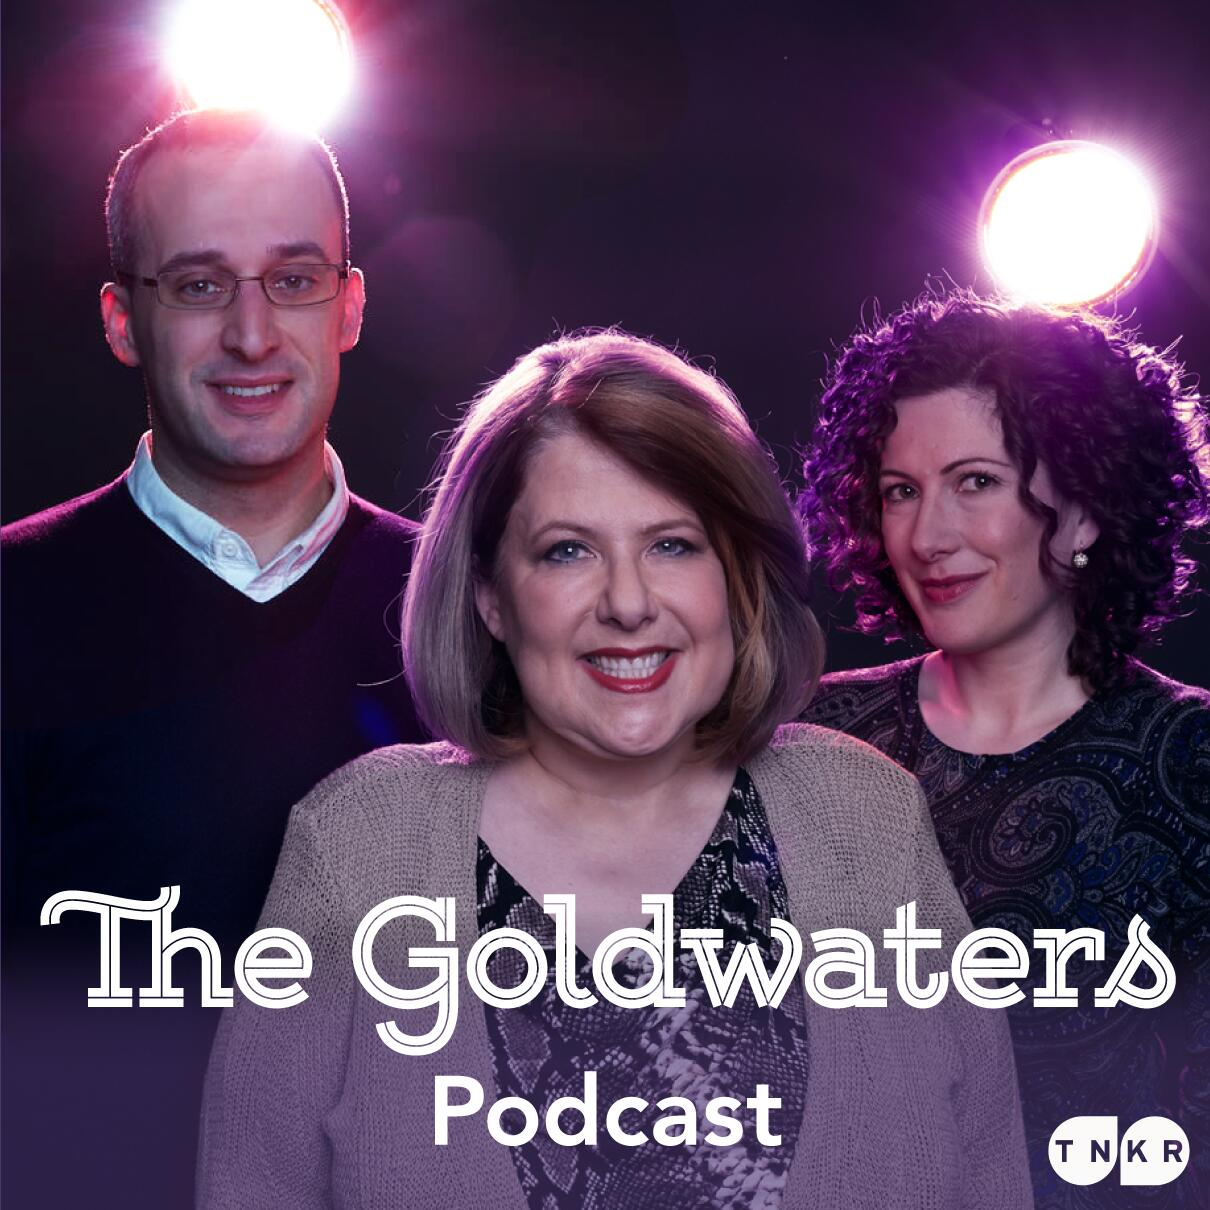 The Goldwaters